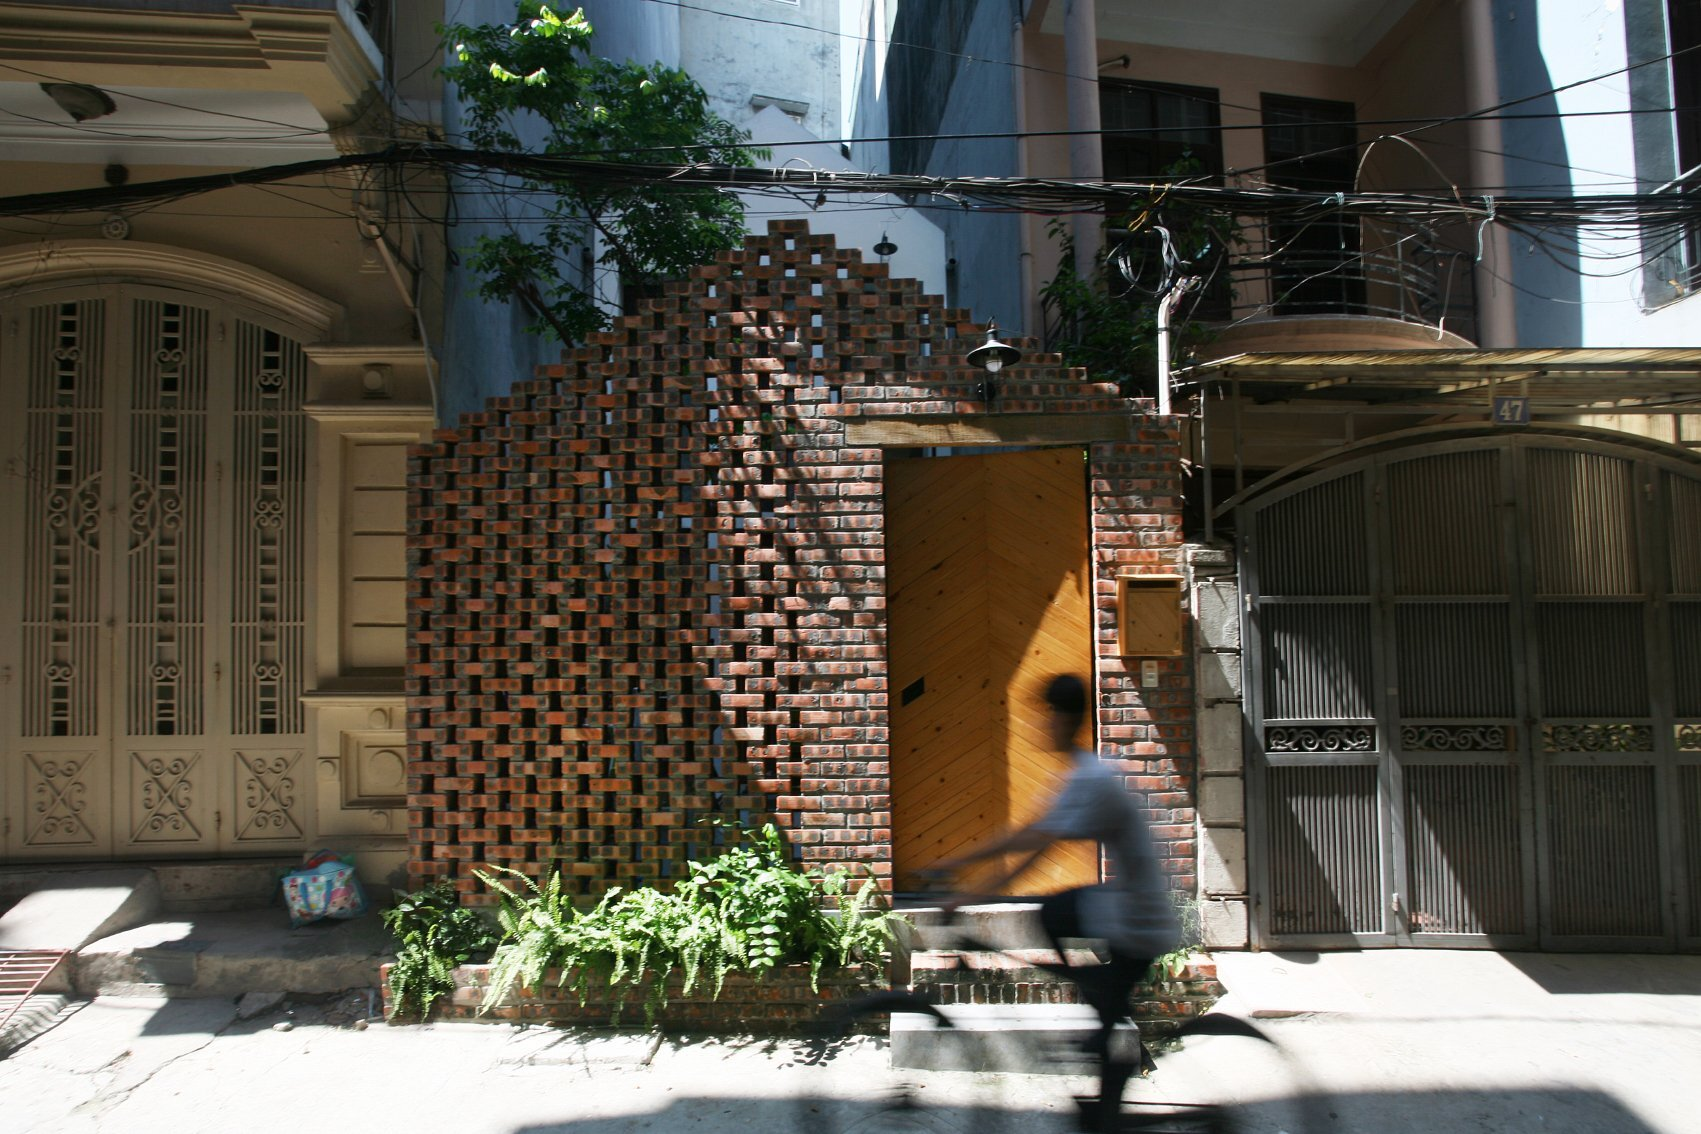 Maison T - Nghia-Architect - Vietnam - Exterior - Humble Homes